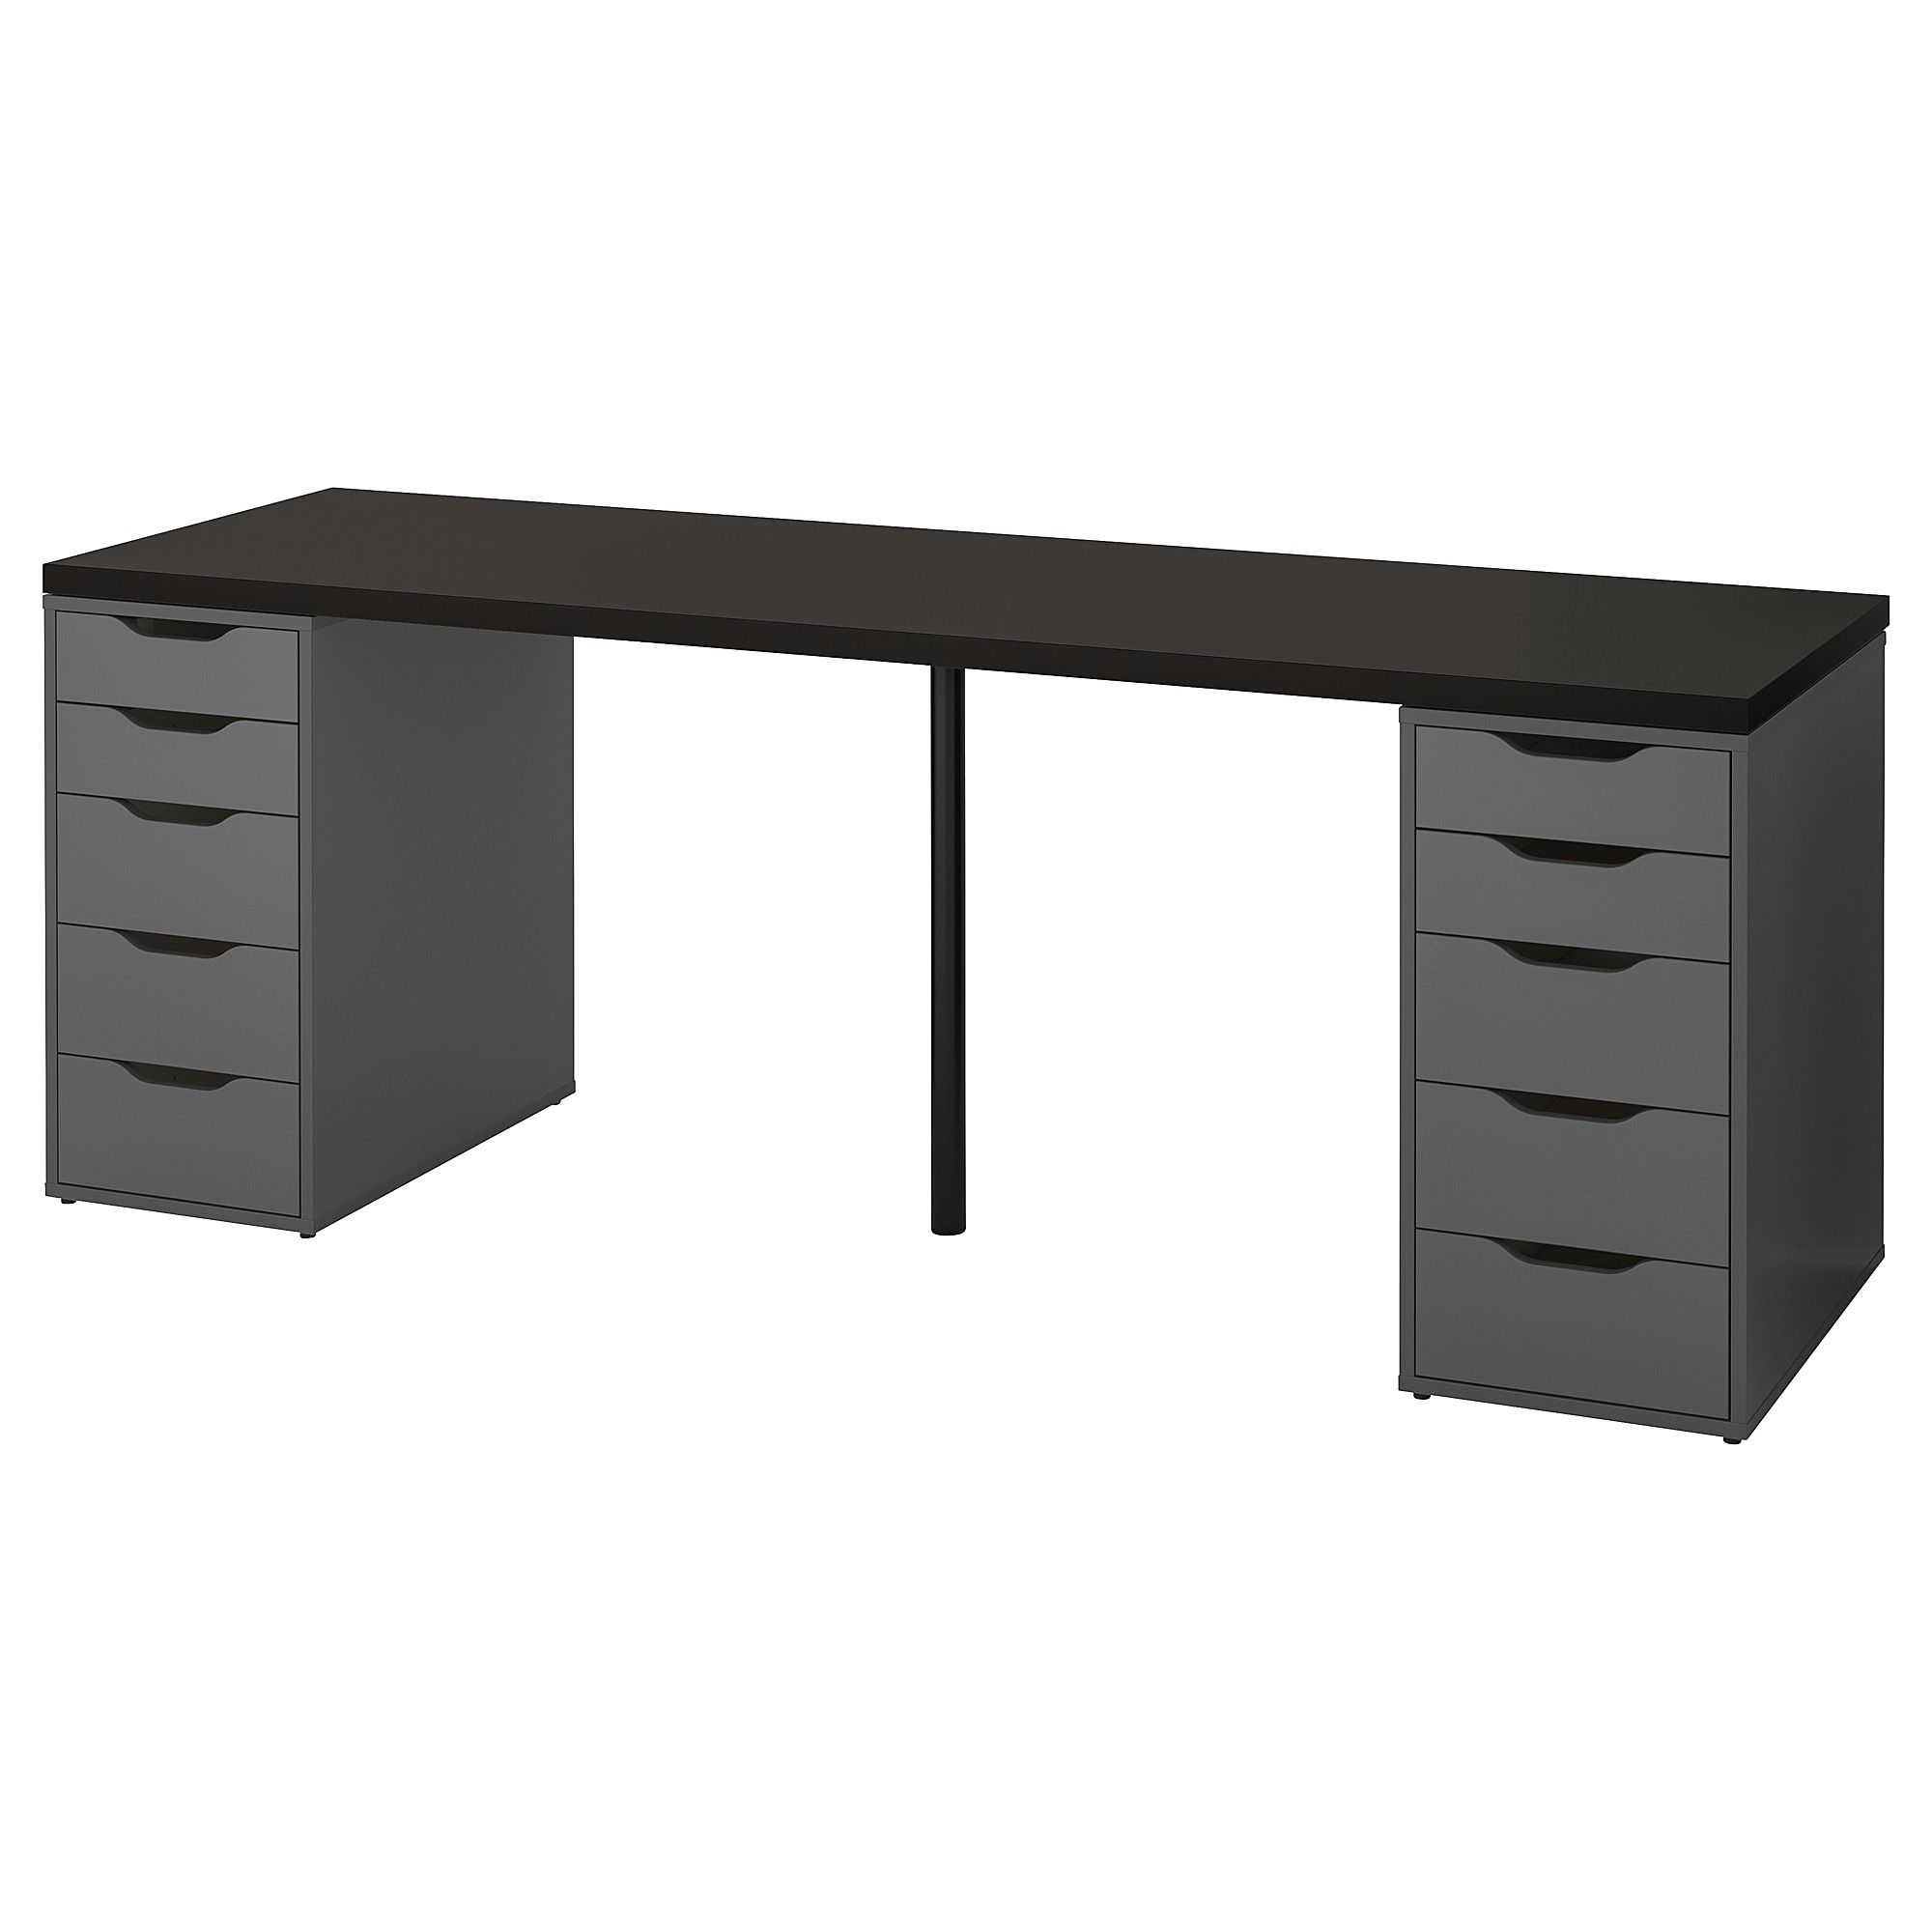 Linnmon Alex Table Black Brown Gray 78 3 4x23 5 8 Ikea Ikea Black And Brown Countertop Desk